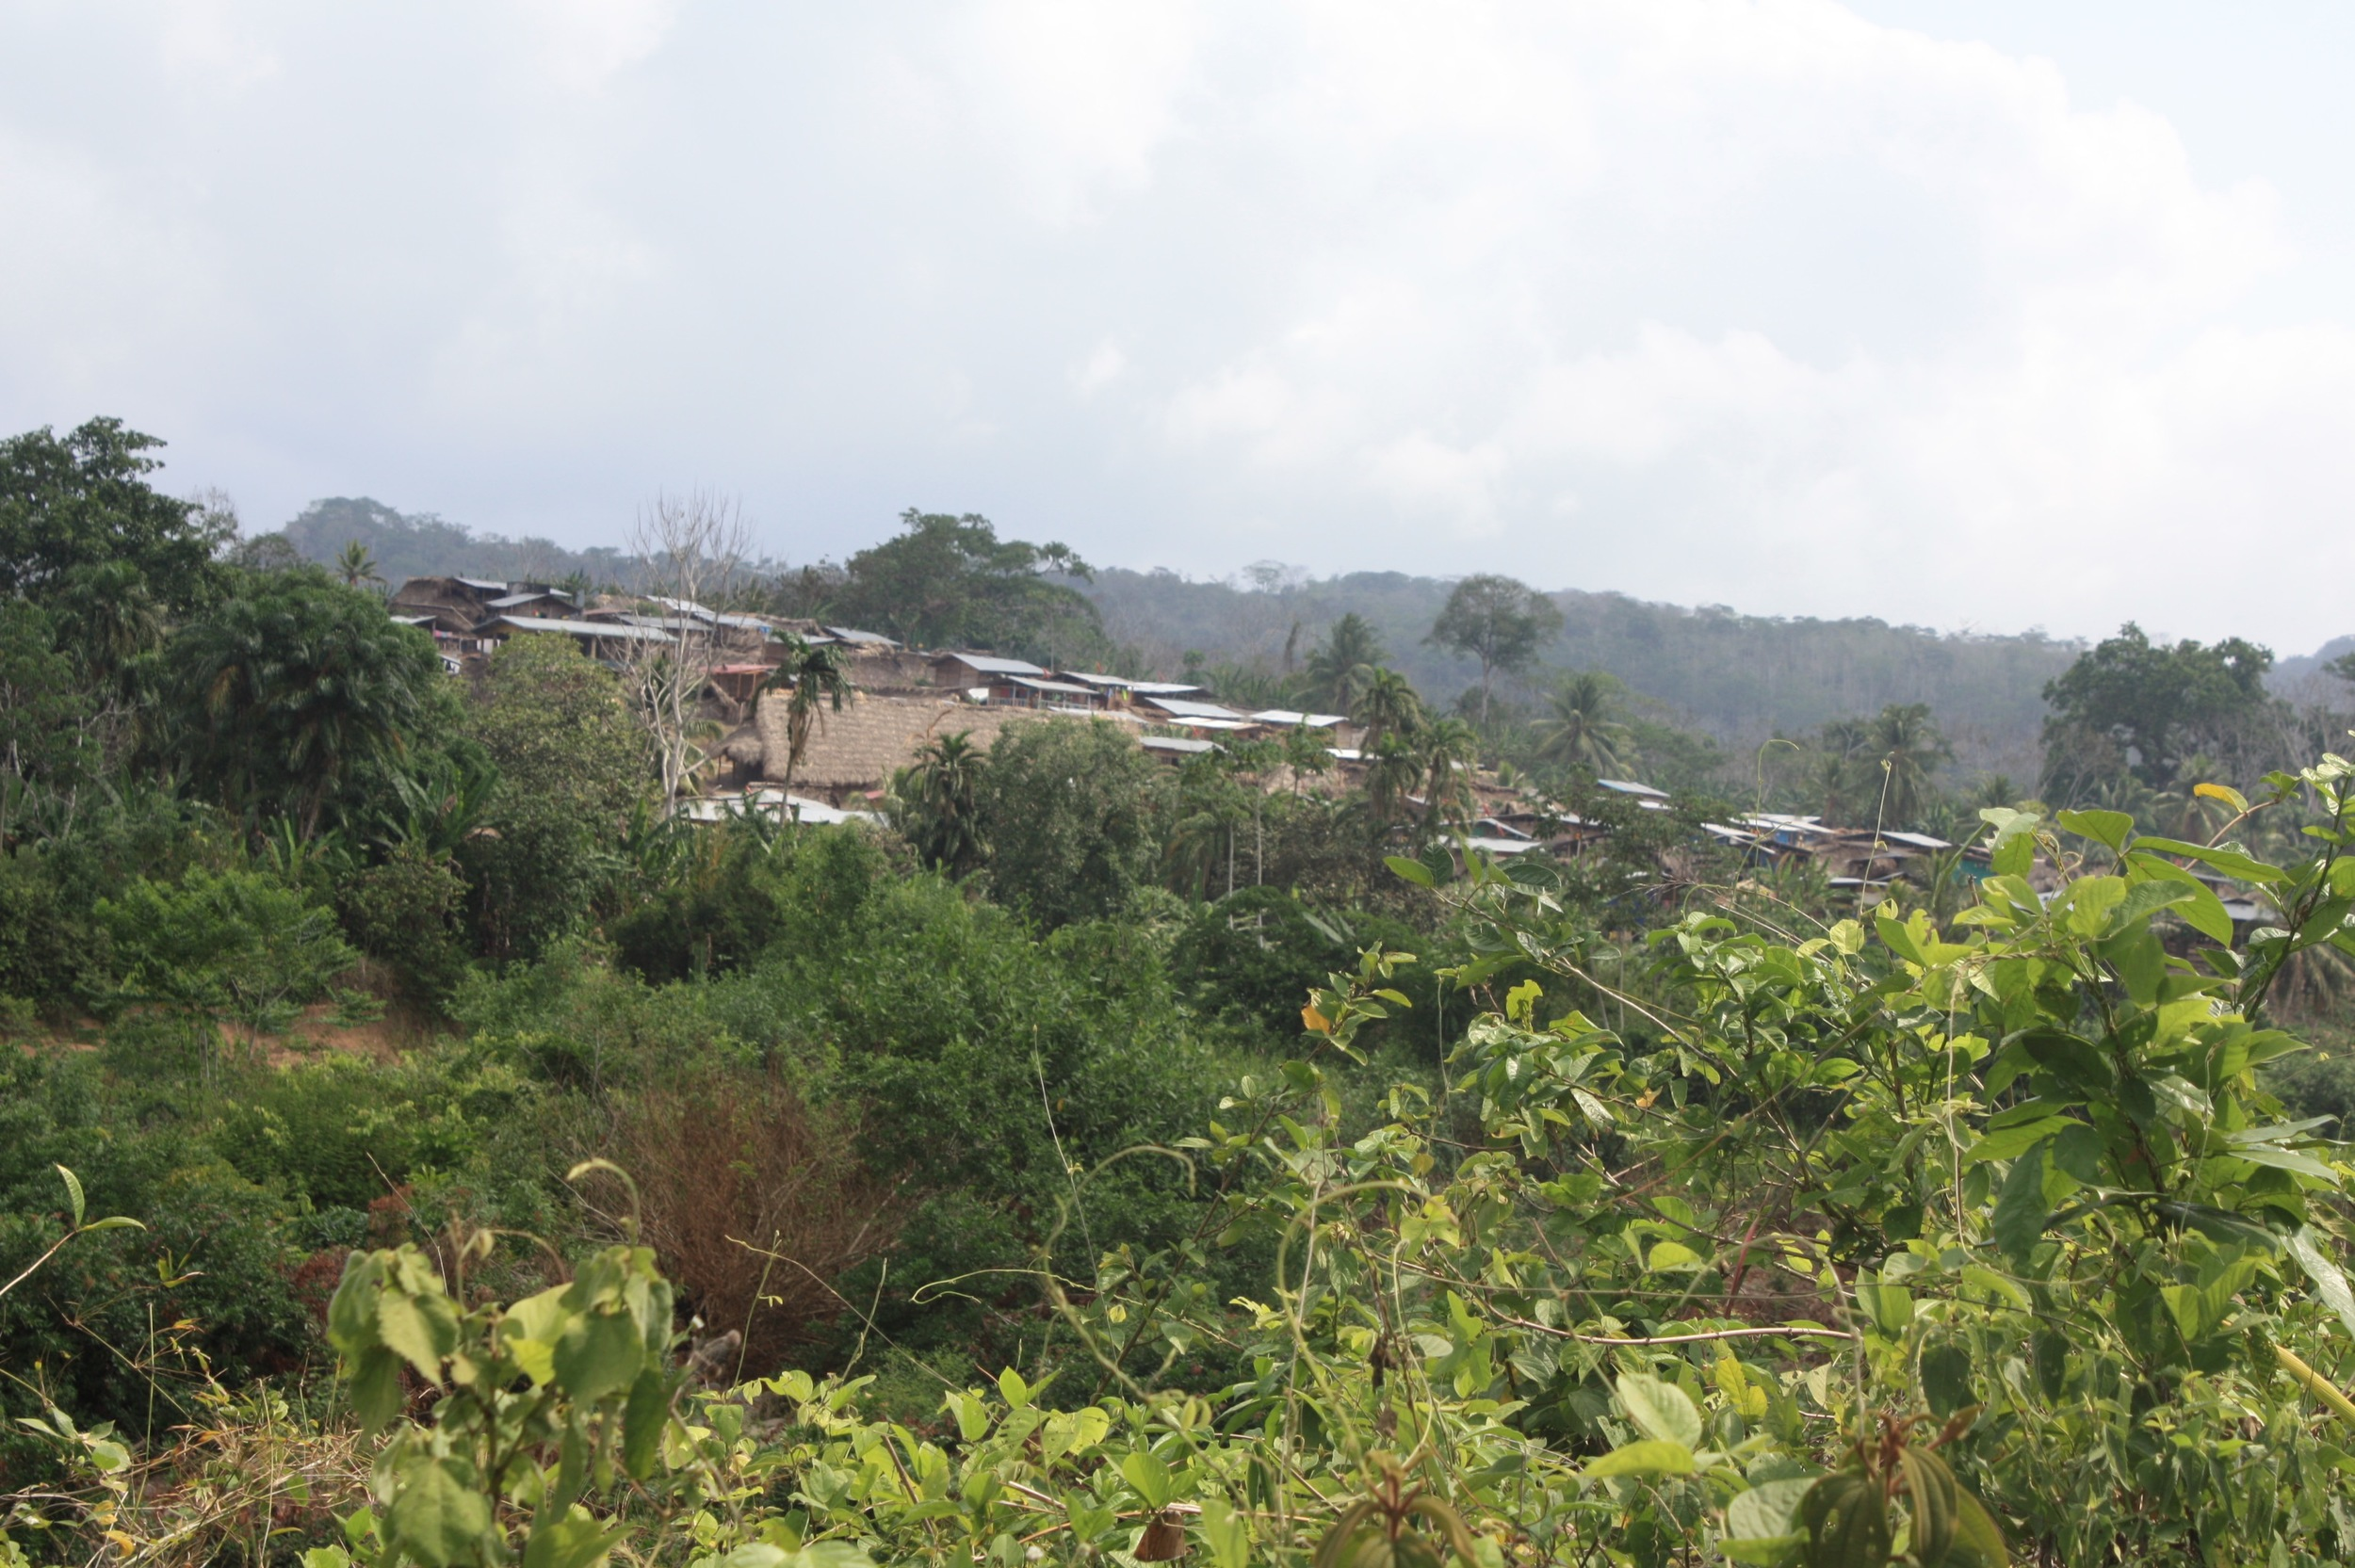 The village of Wala from the road.